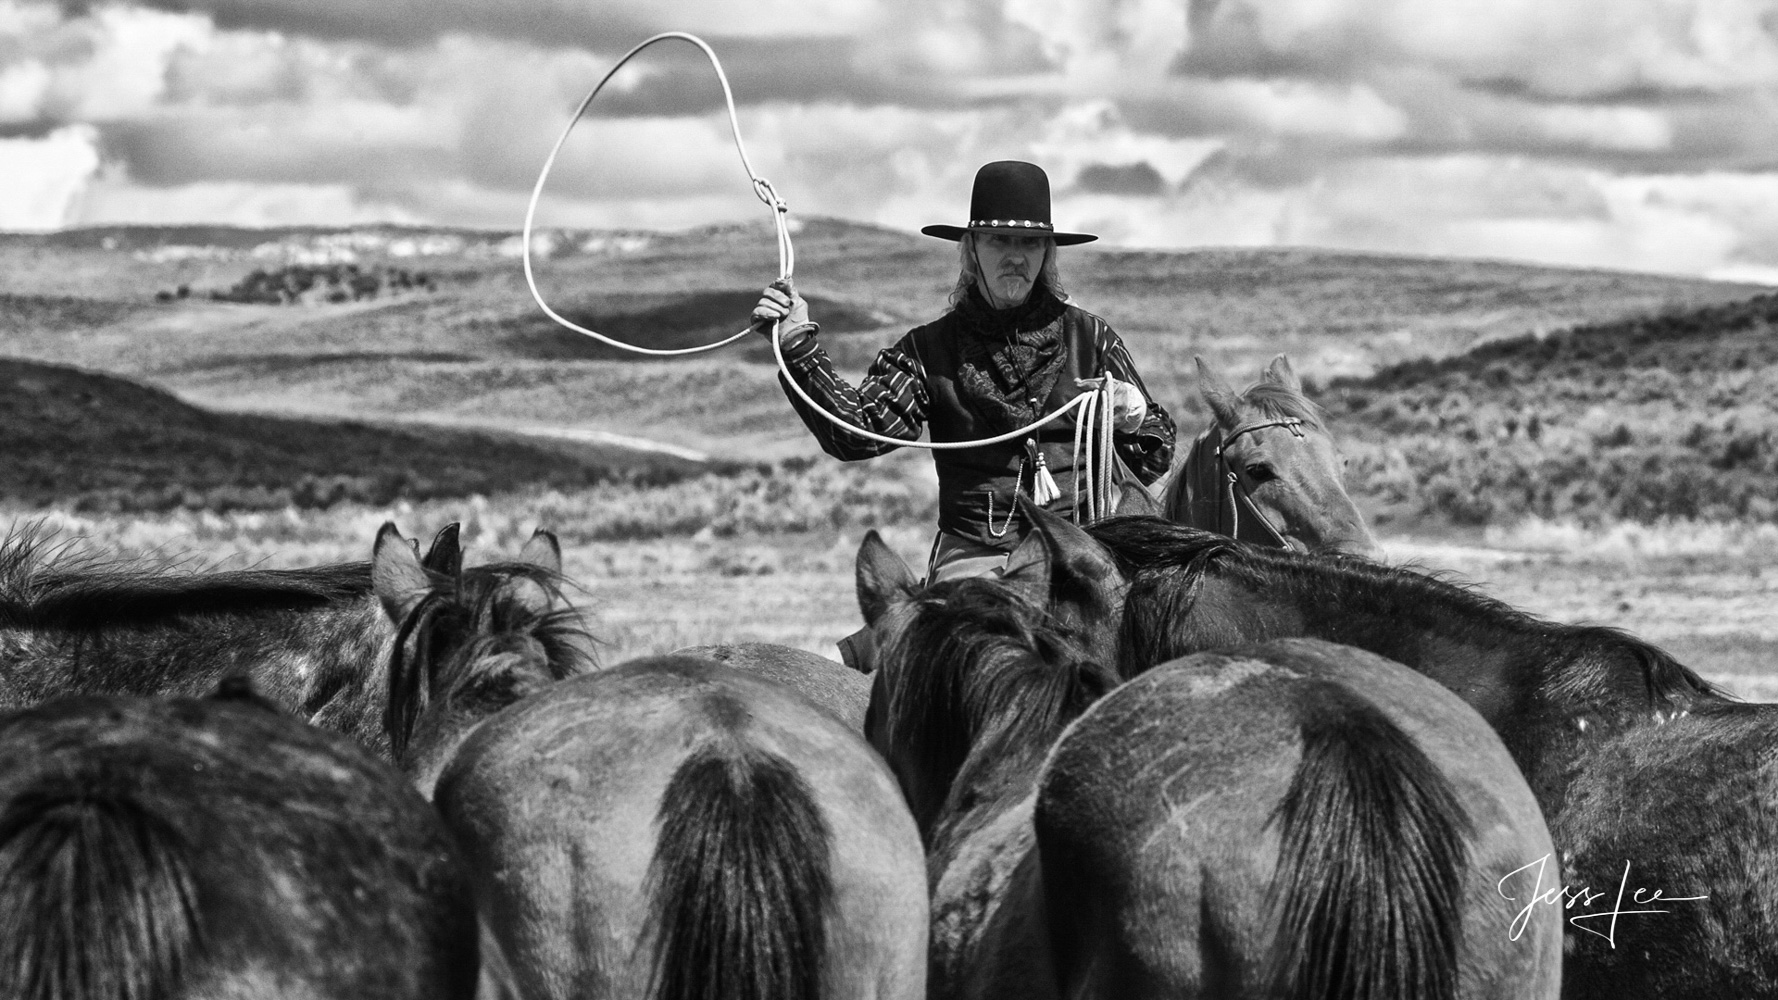 Fine Art Limited Edition Photography of Cowboys, Horses and life in the West. This Colorado cowboys lives the tradition of the...